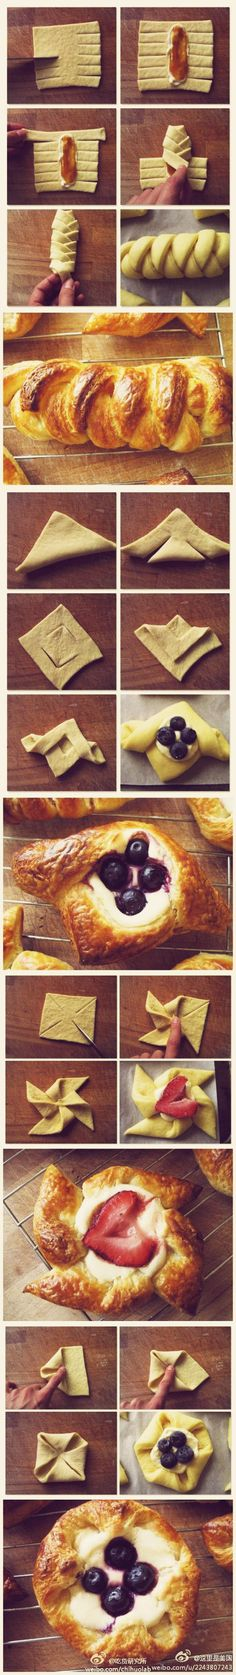 Make with puff pastry or ??? No directions but seems easy from pics